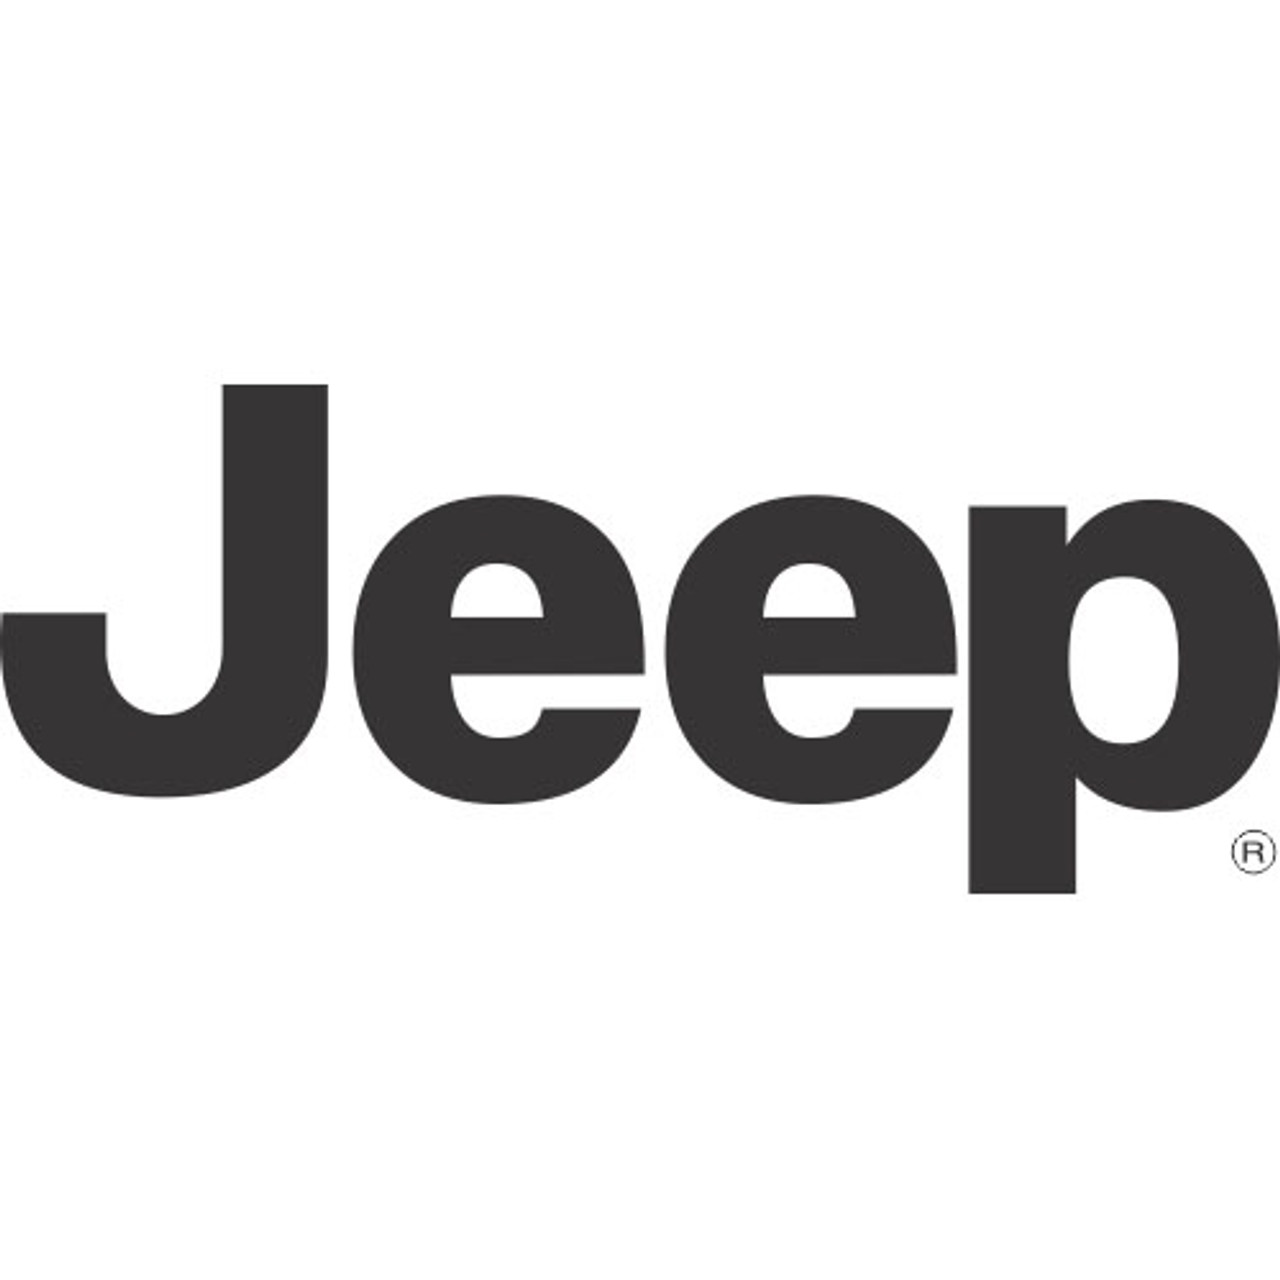 Chrysler Jeep Dodge